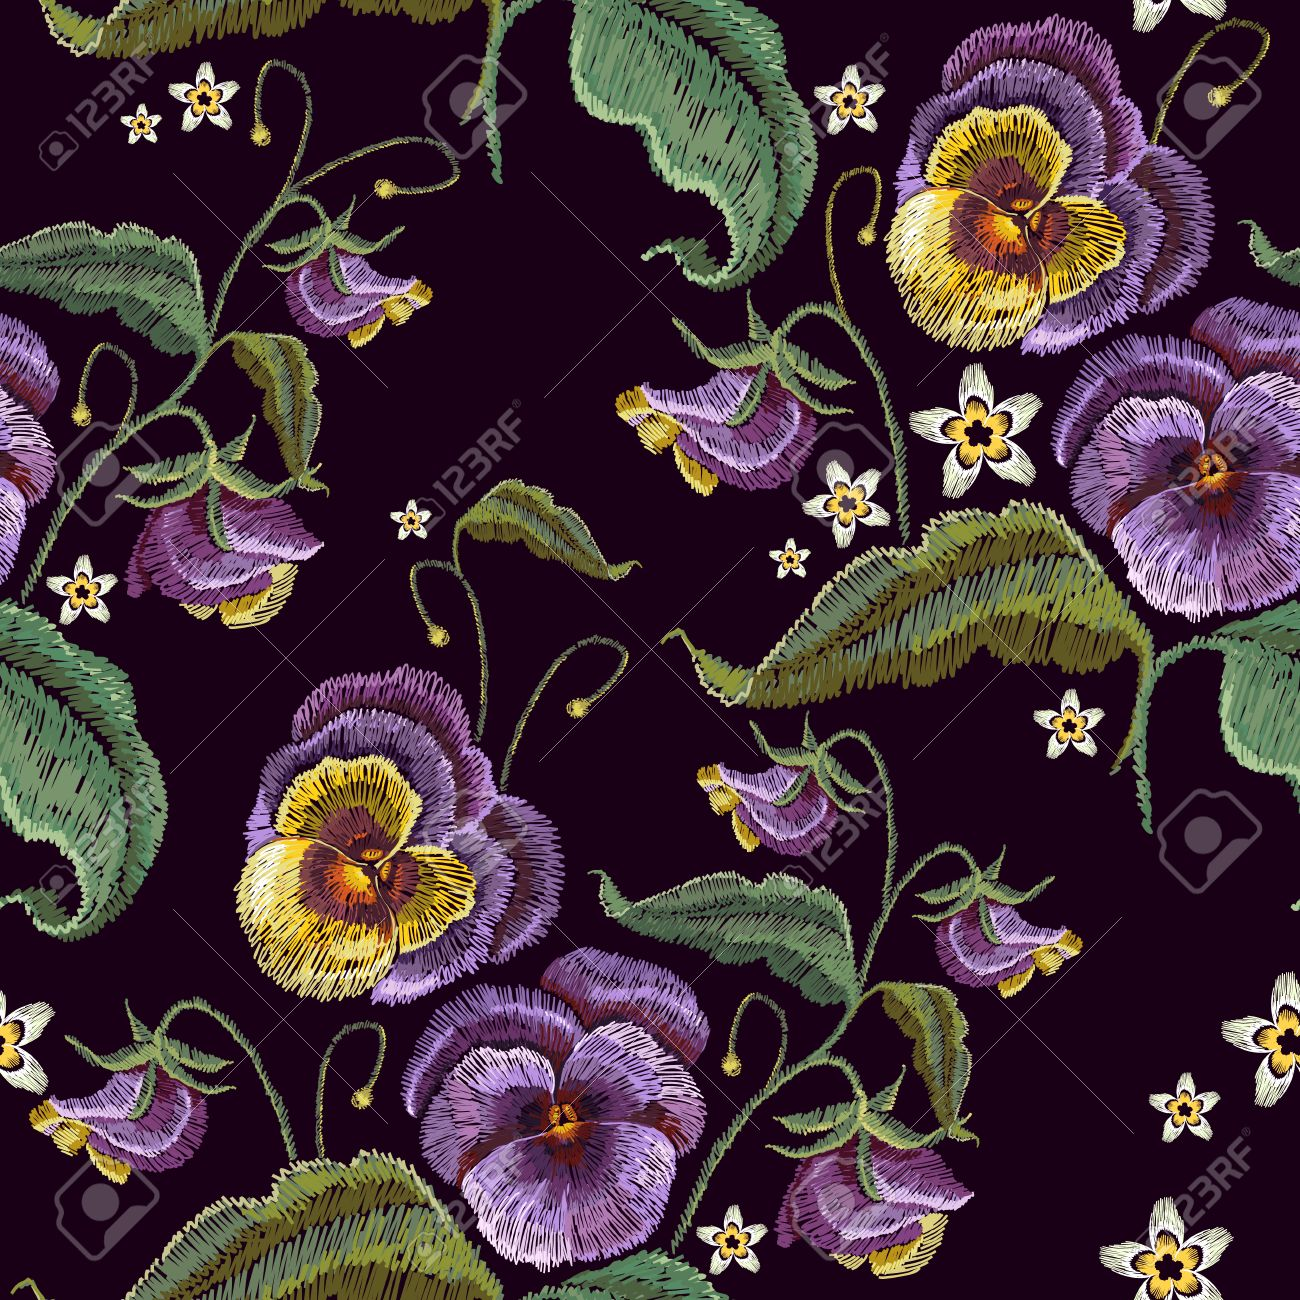 Violets Flower Embroidery Seamless Pattern Classical Embroidery Royalty Free Cliparts Vectors And Stock Illustration Image 78599503